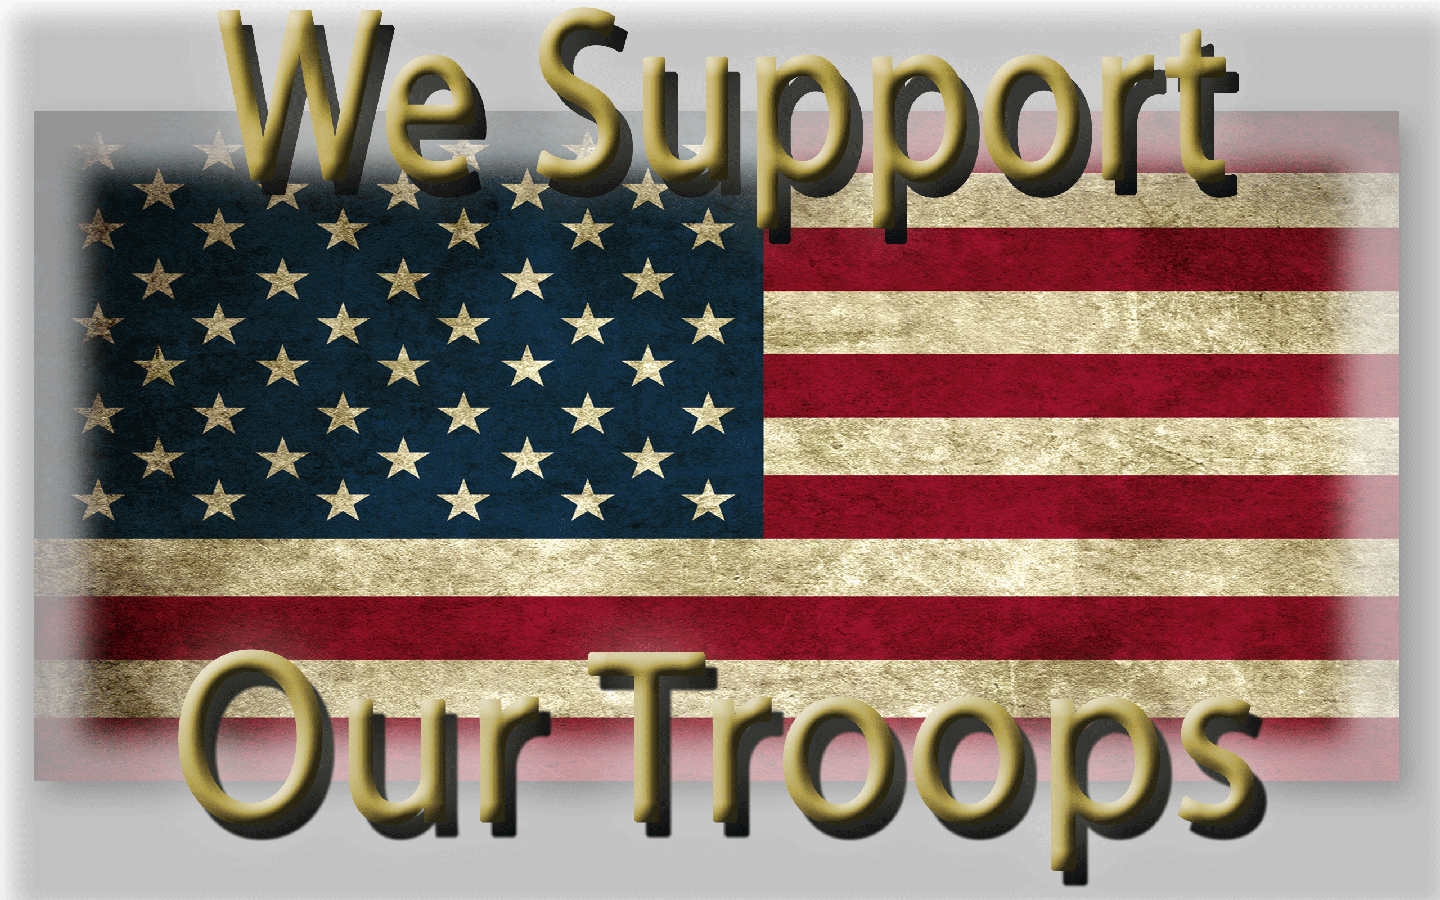 We support our troops. Operation gratitude.